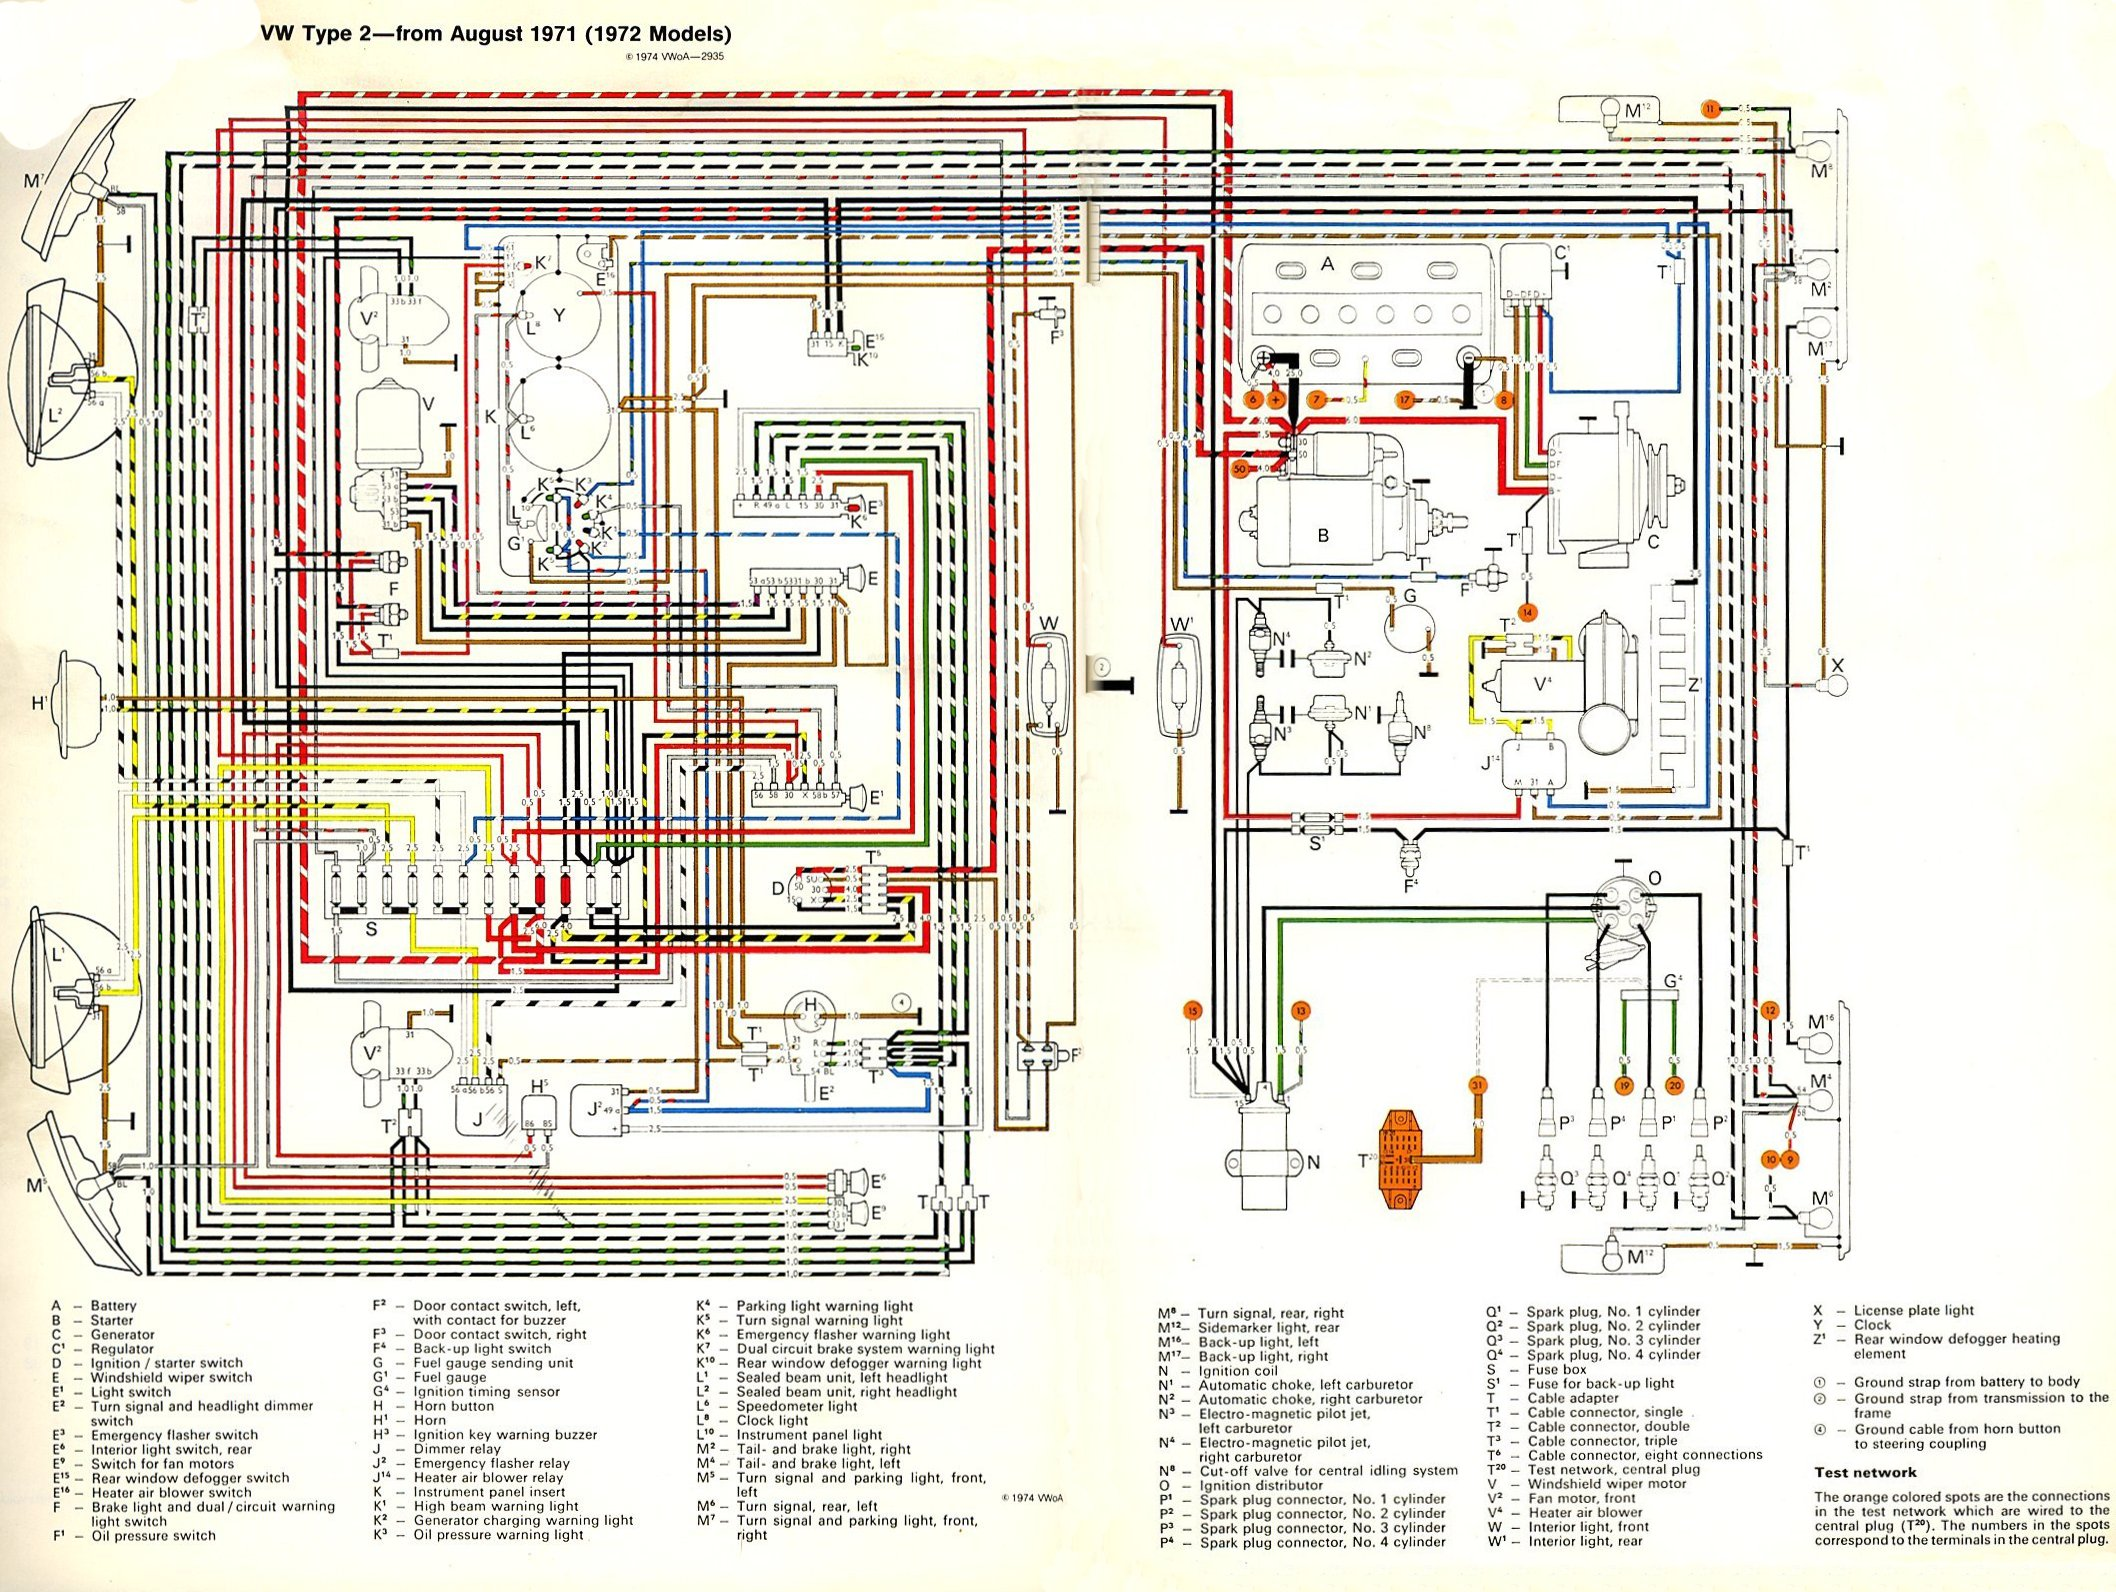 bus_1972_wiring 1977 porsche 911 wiring diagram wiring diagram simonand 1978 vw bus fuse box diagram at bayanpartner.co